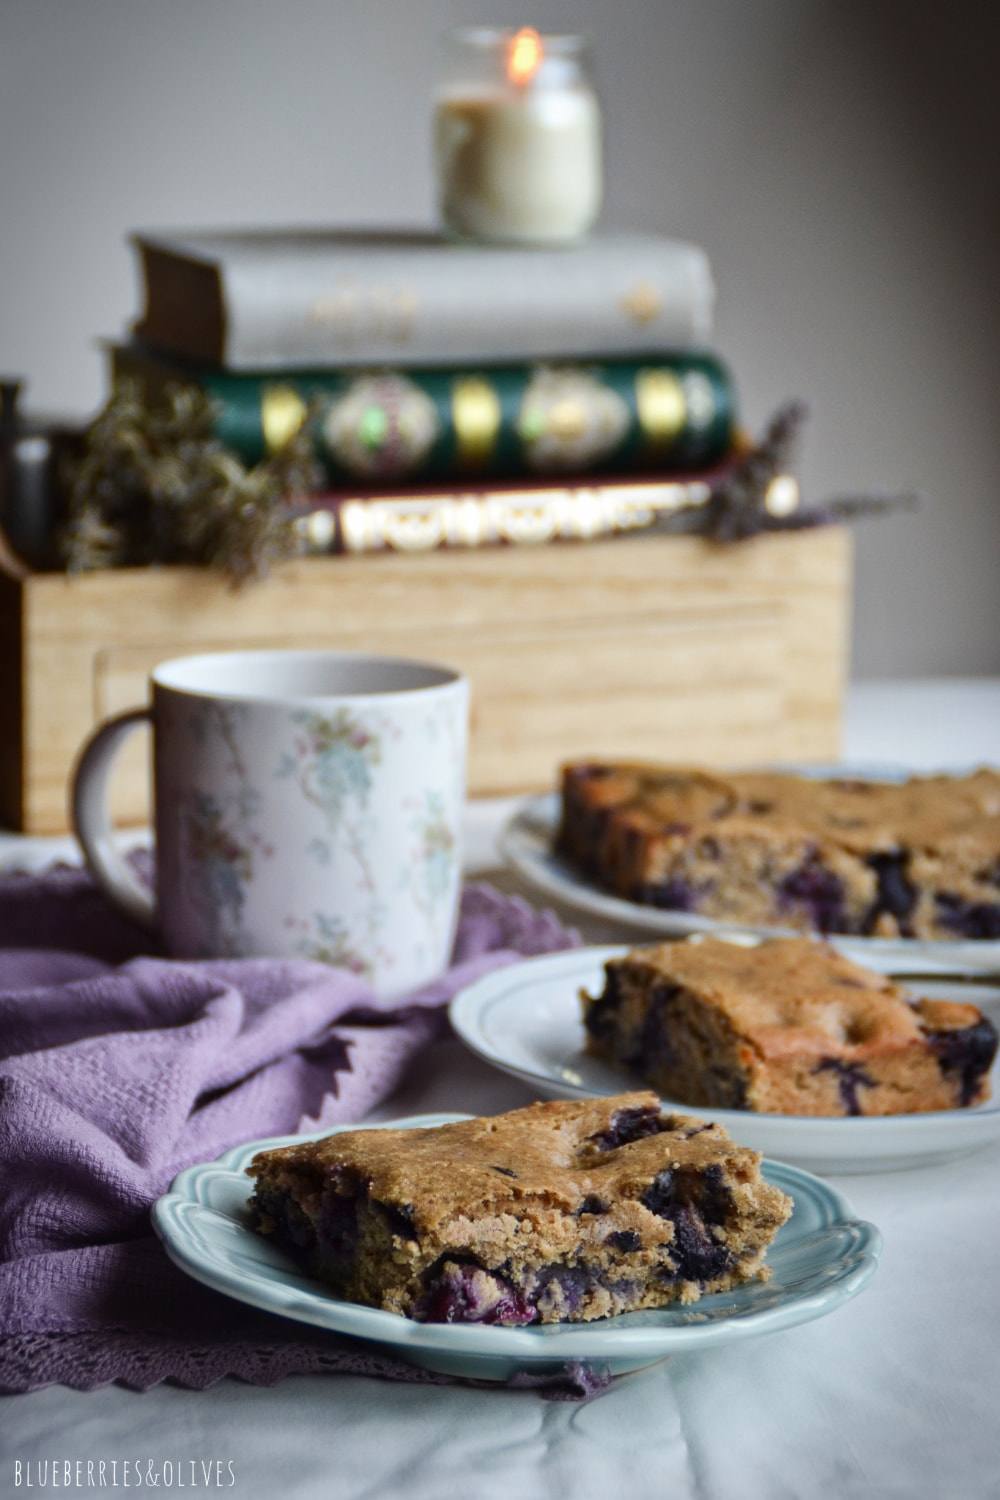 PIECES OF BLUEBERRY CAKE IN SMALL DISHES, LAVENDER FLOWERS, OLD RECIPE PAPER, BLACK TEA ON MUG